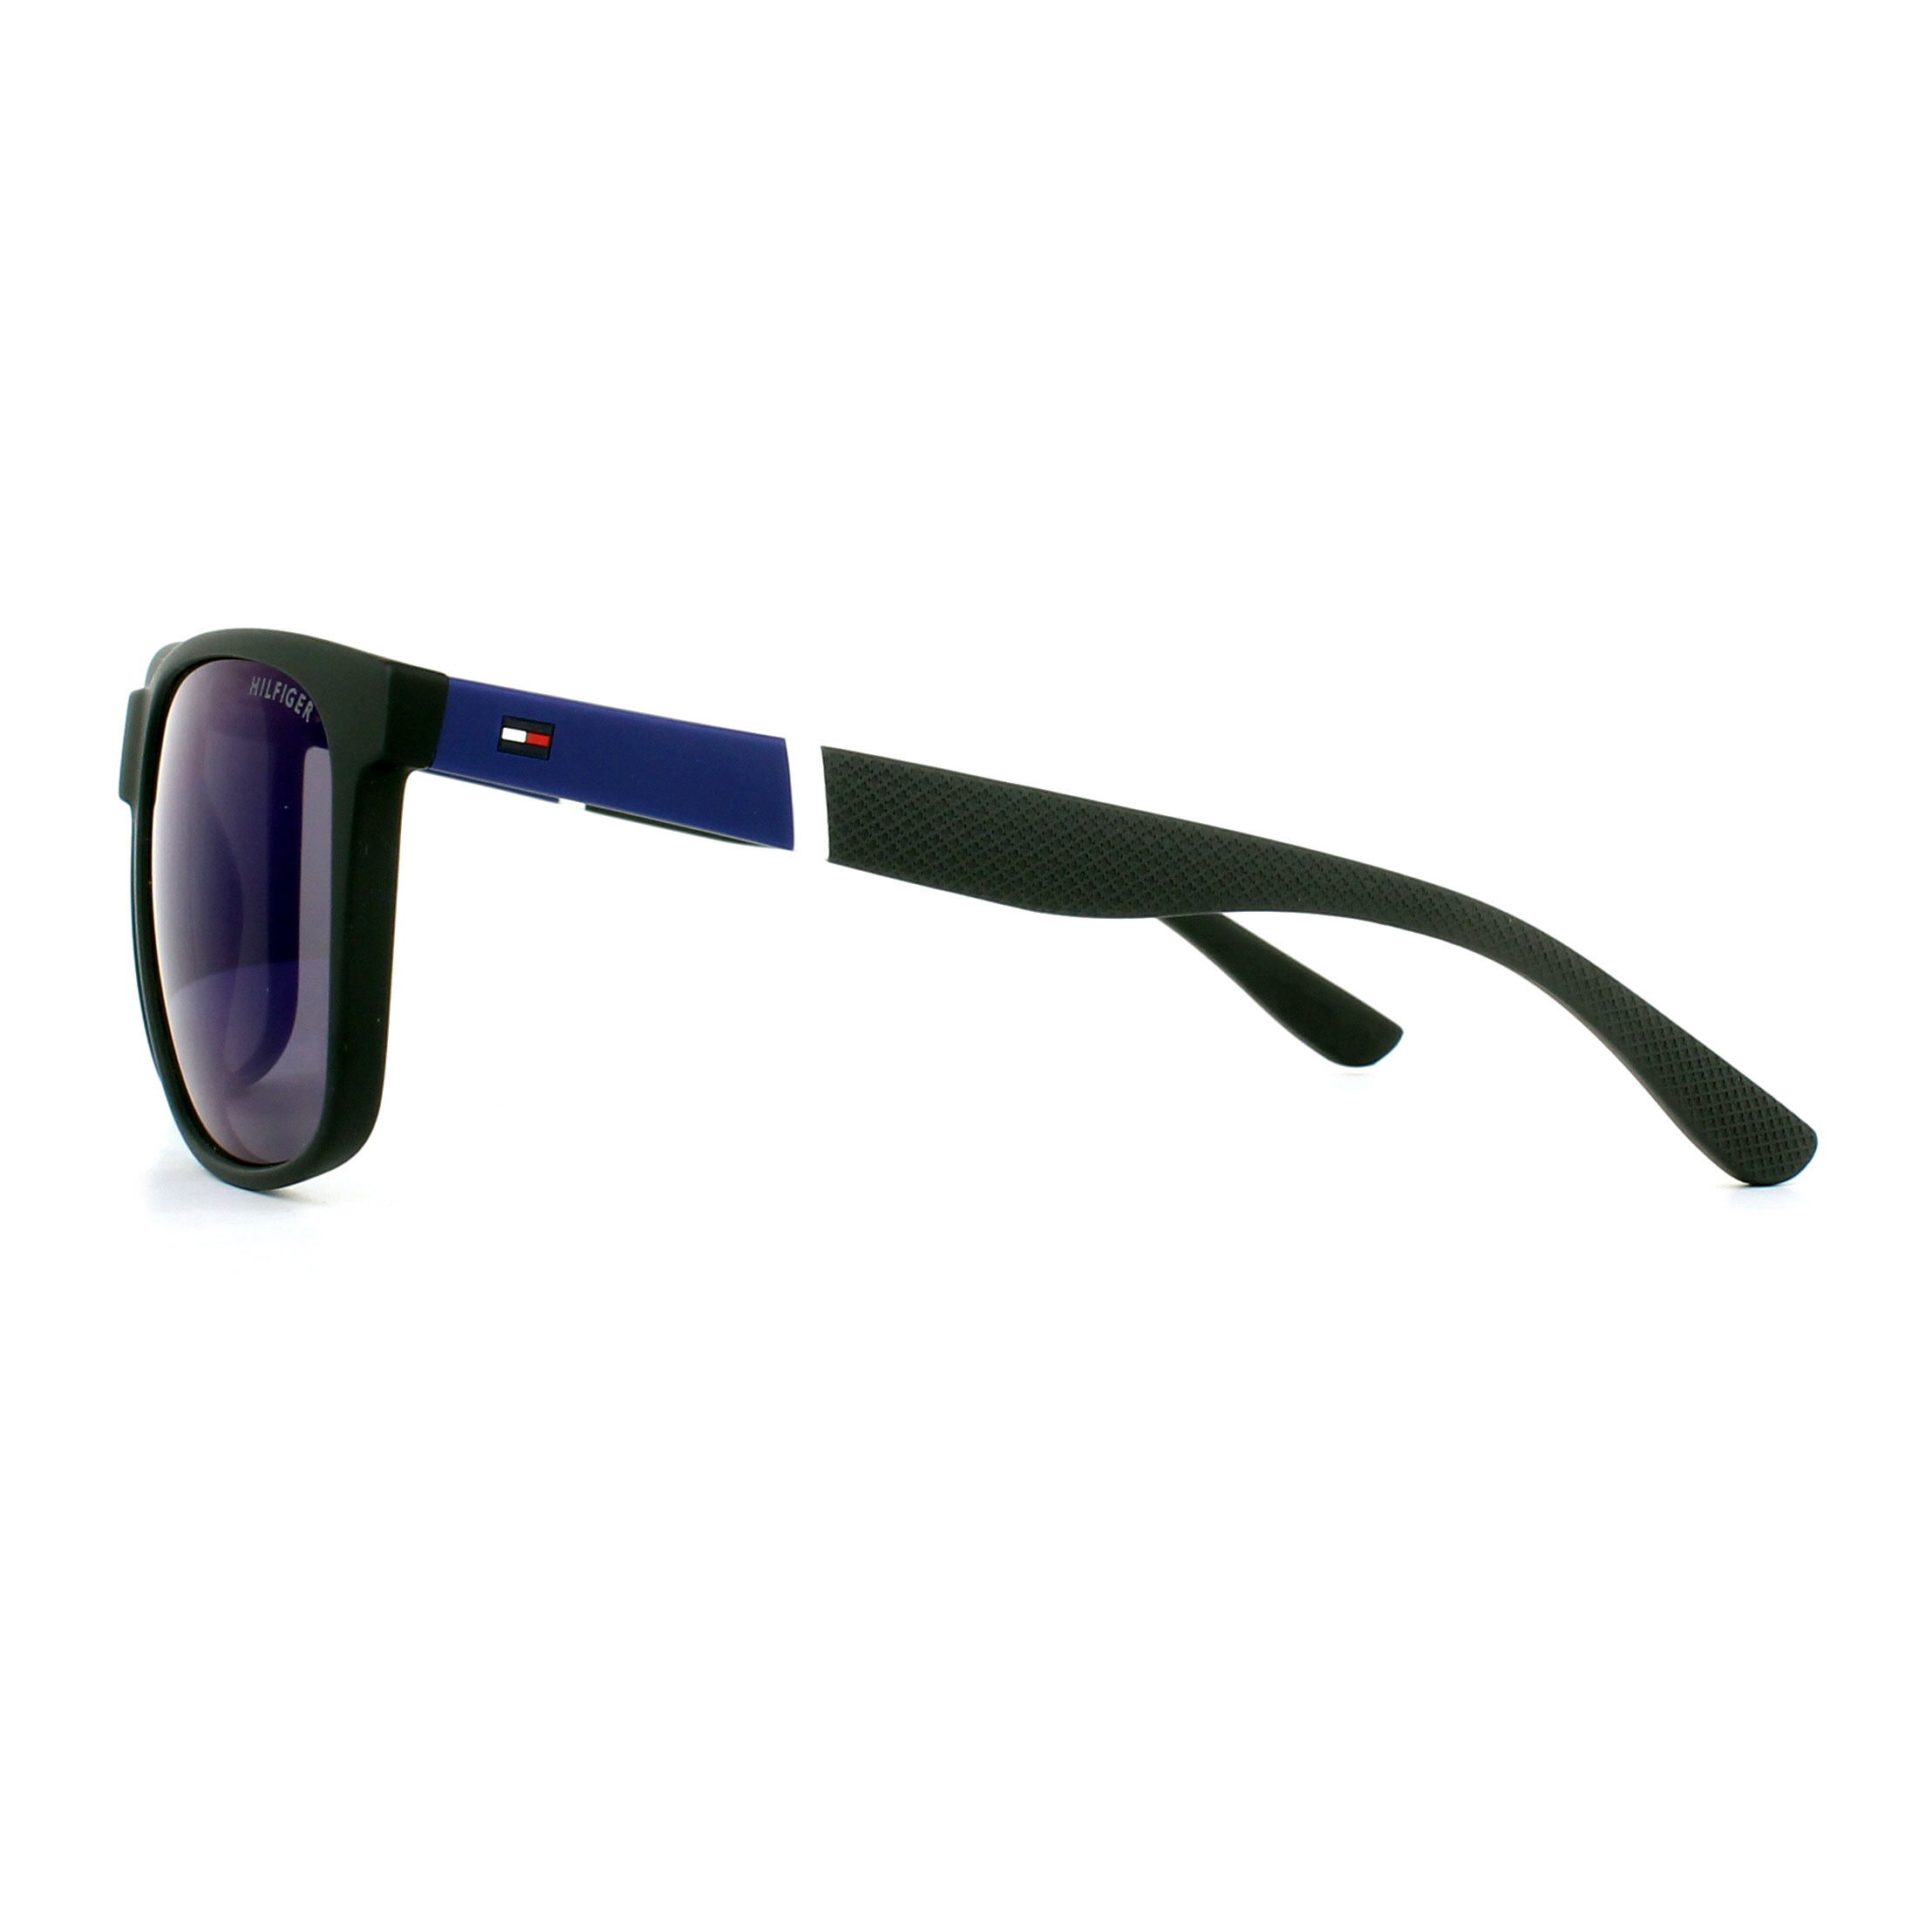 Sentinel Tommy Hilfiger Sunglasses TH 1281 S FMA XT Black Blue Blue Mirror ab9ac76de2